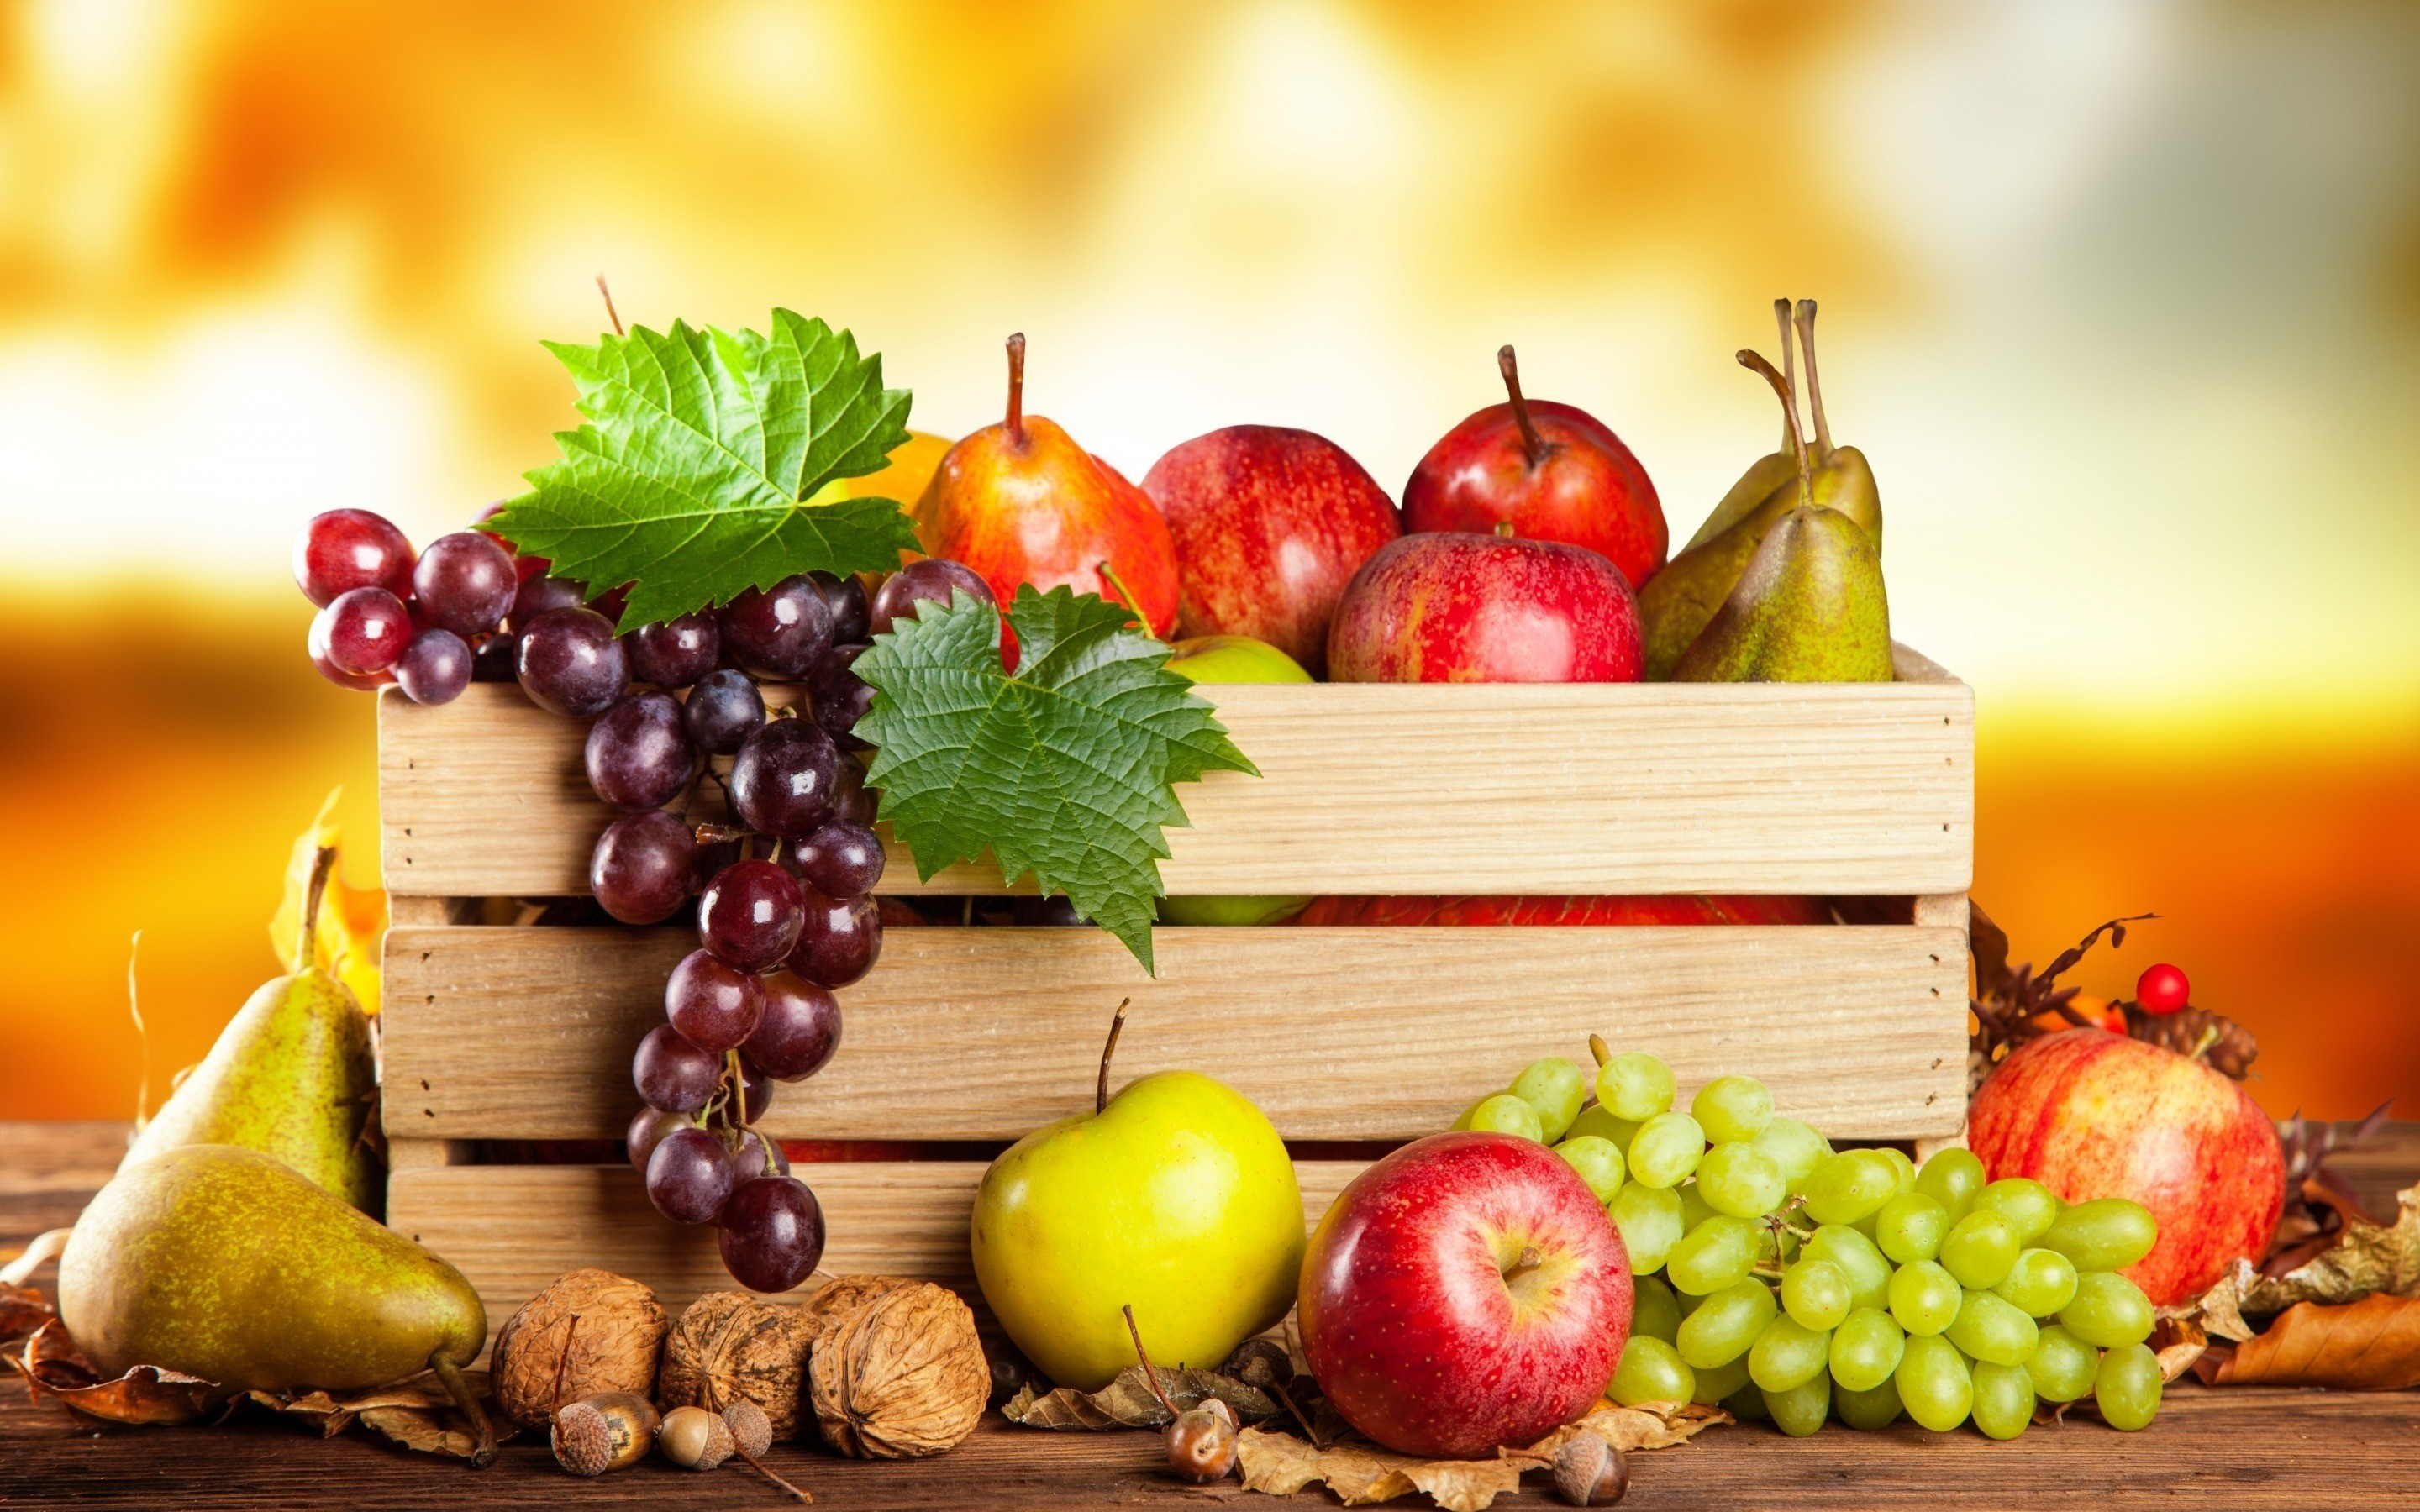 Res: 2880x1800, Healthy Fruit Basket for 2880 x 1800 Retina Display resolution